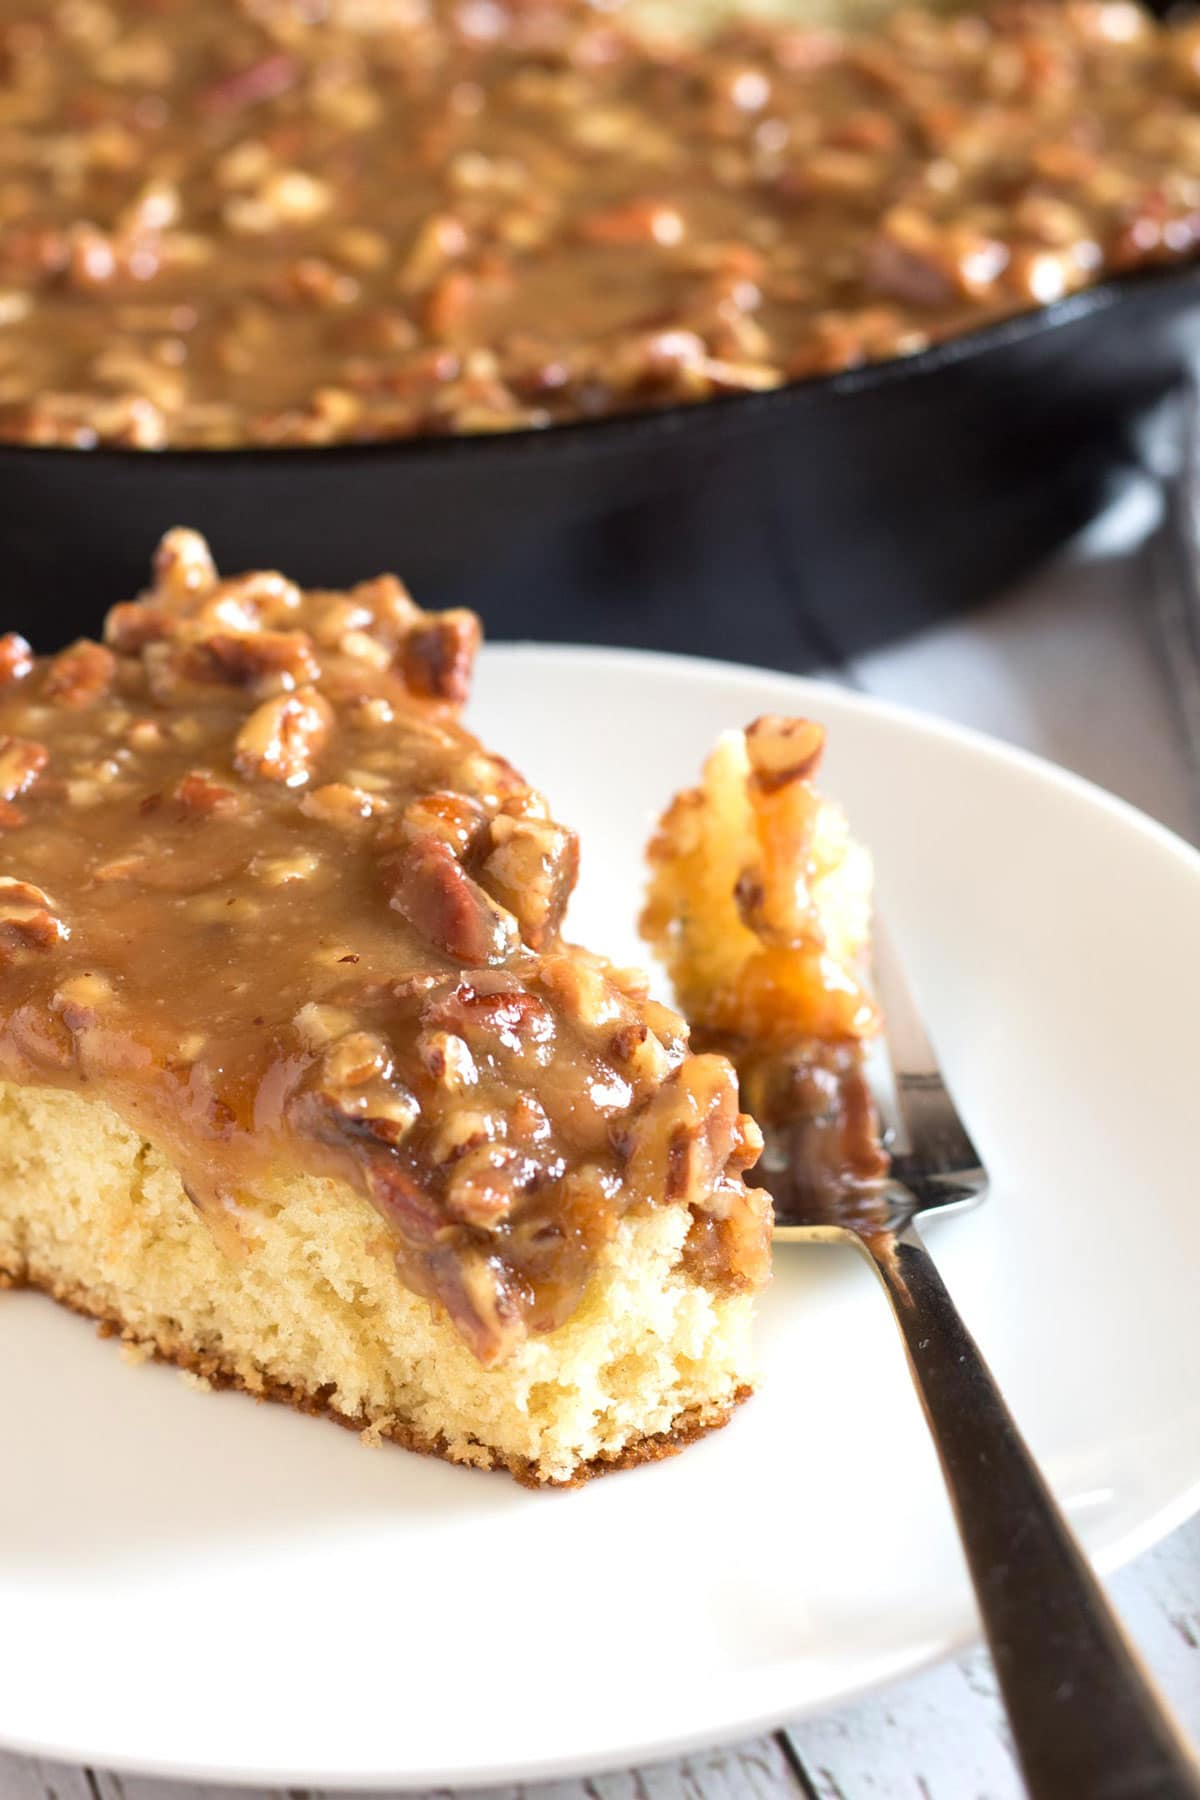 Skillet cake with caramel pecan topping dripping down the side and a bite on a fork.